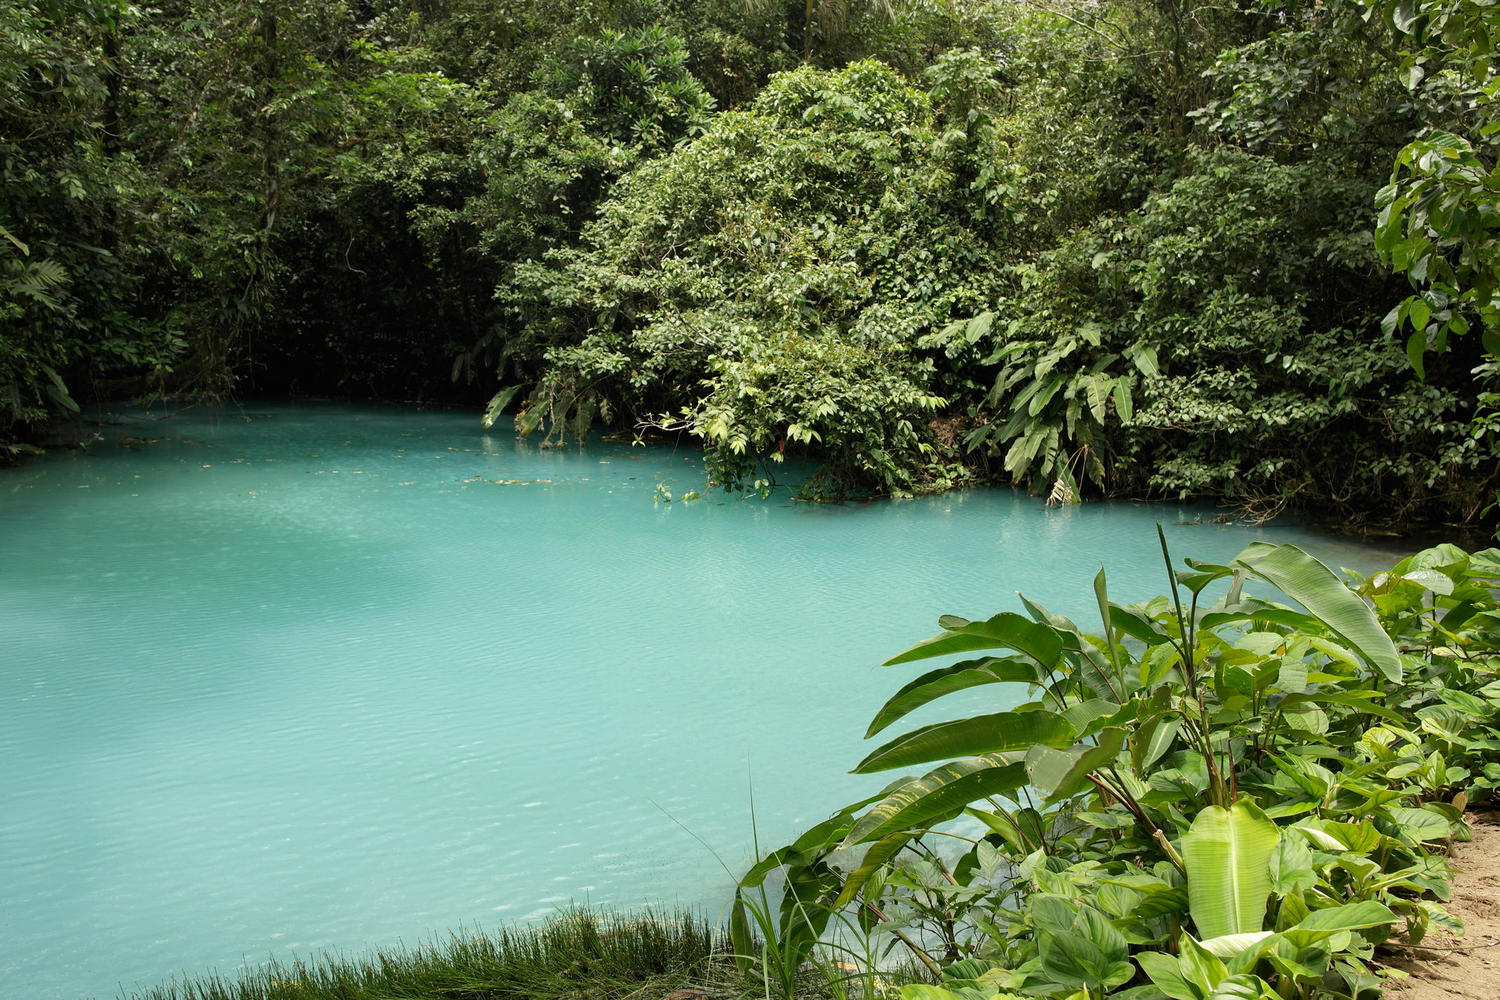 The blue lagoon in Volcano national park, Tenorio